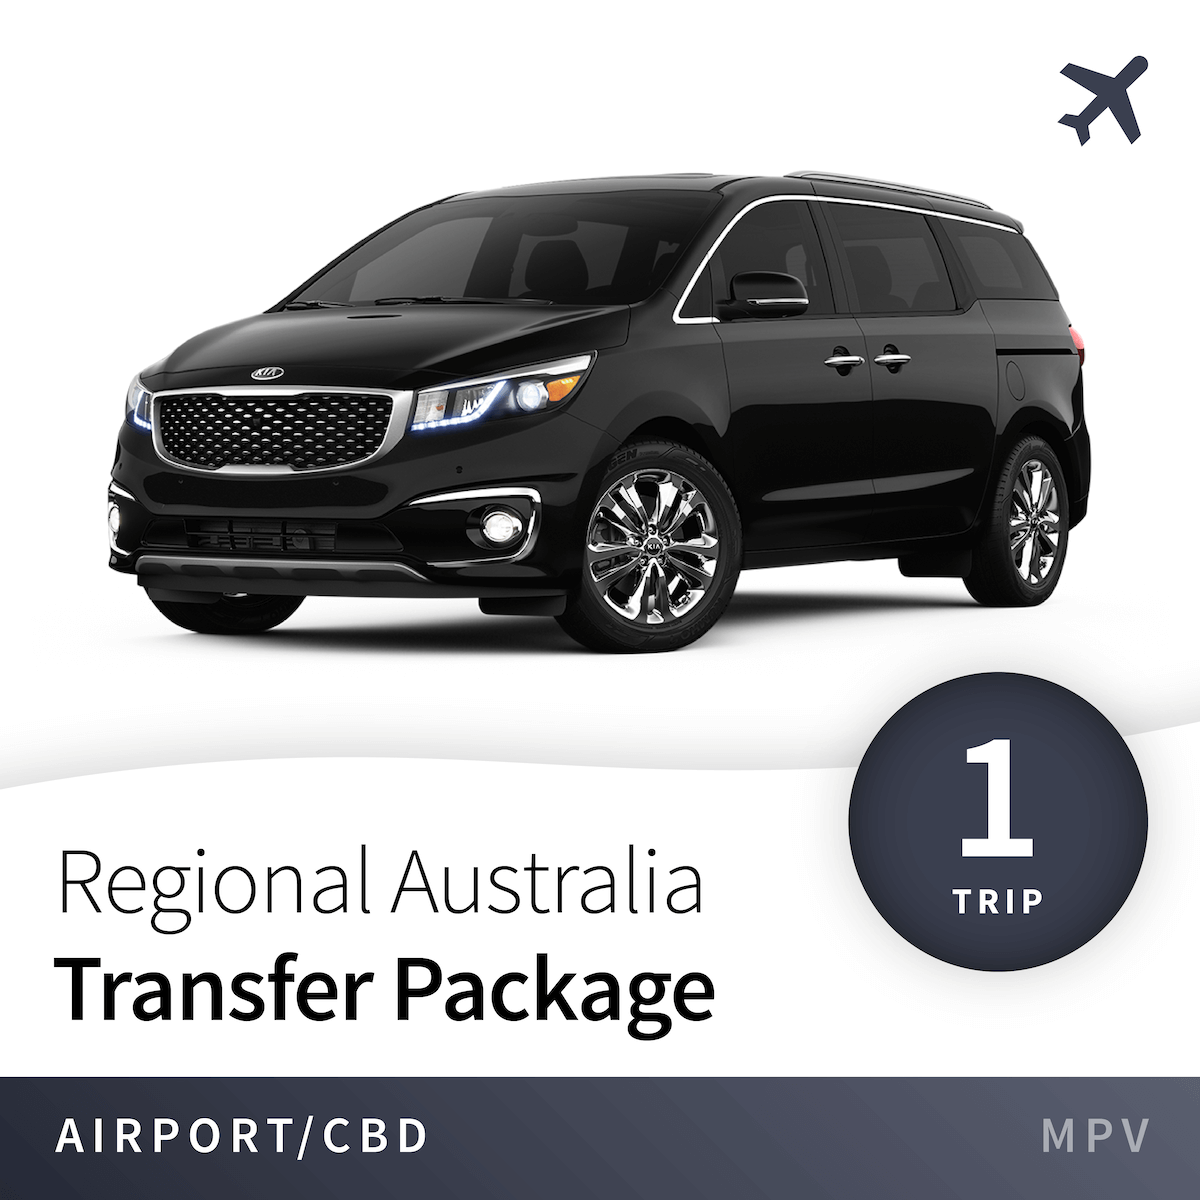 Regional Airport Transfer Package - MPV (1 Trip) 1